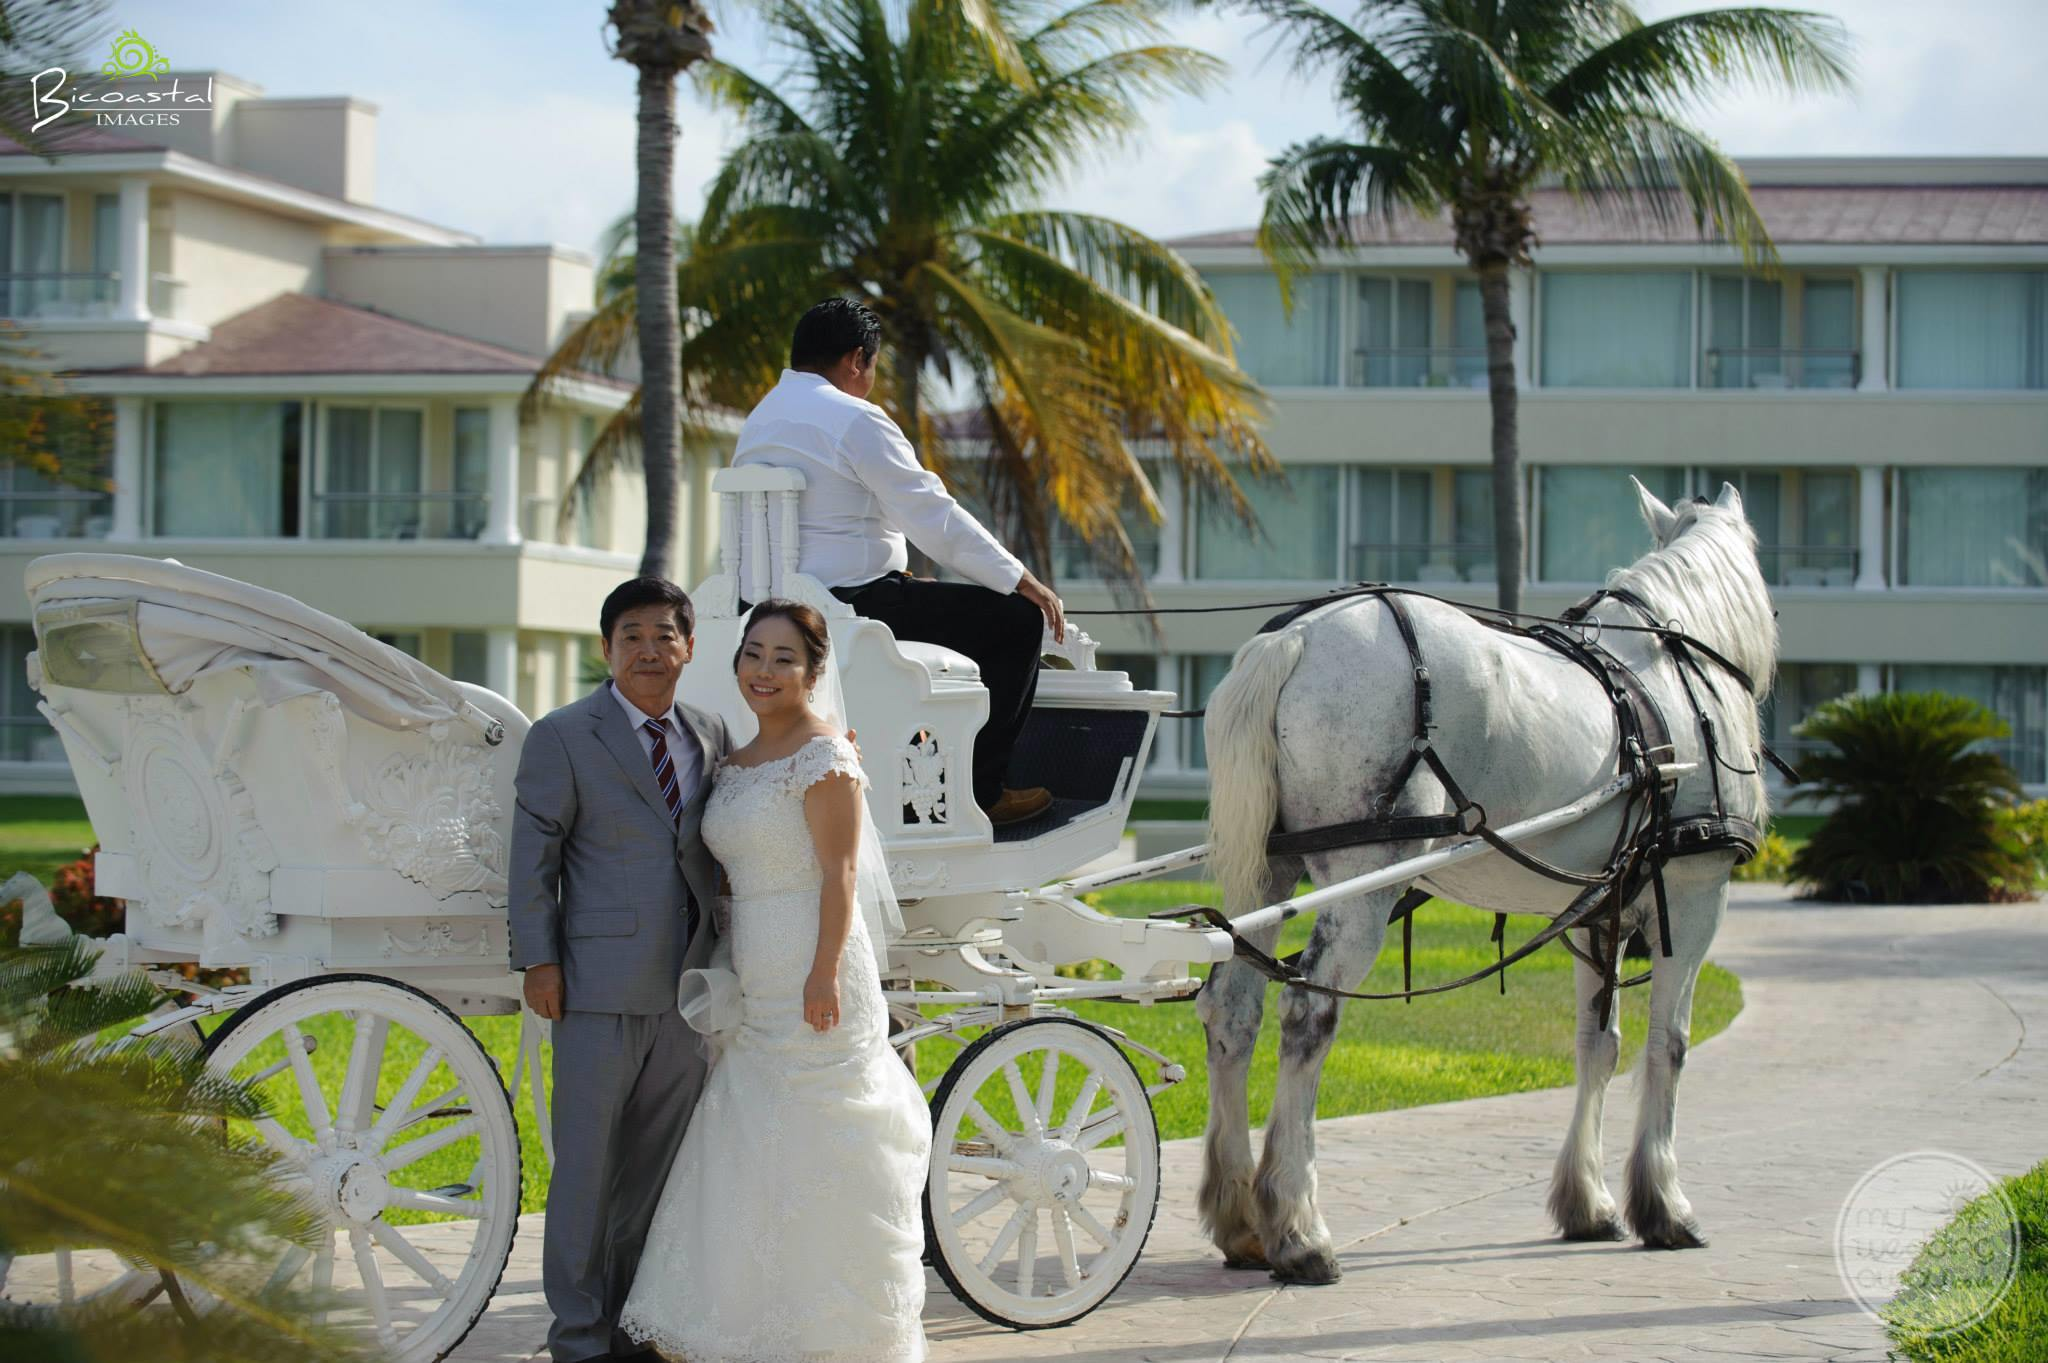 Moon Palace Wedding Carriage Ride